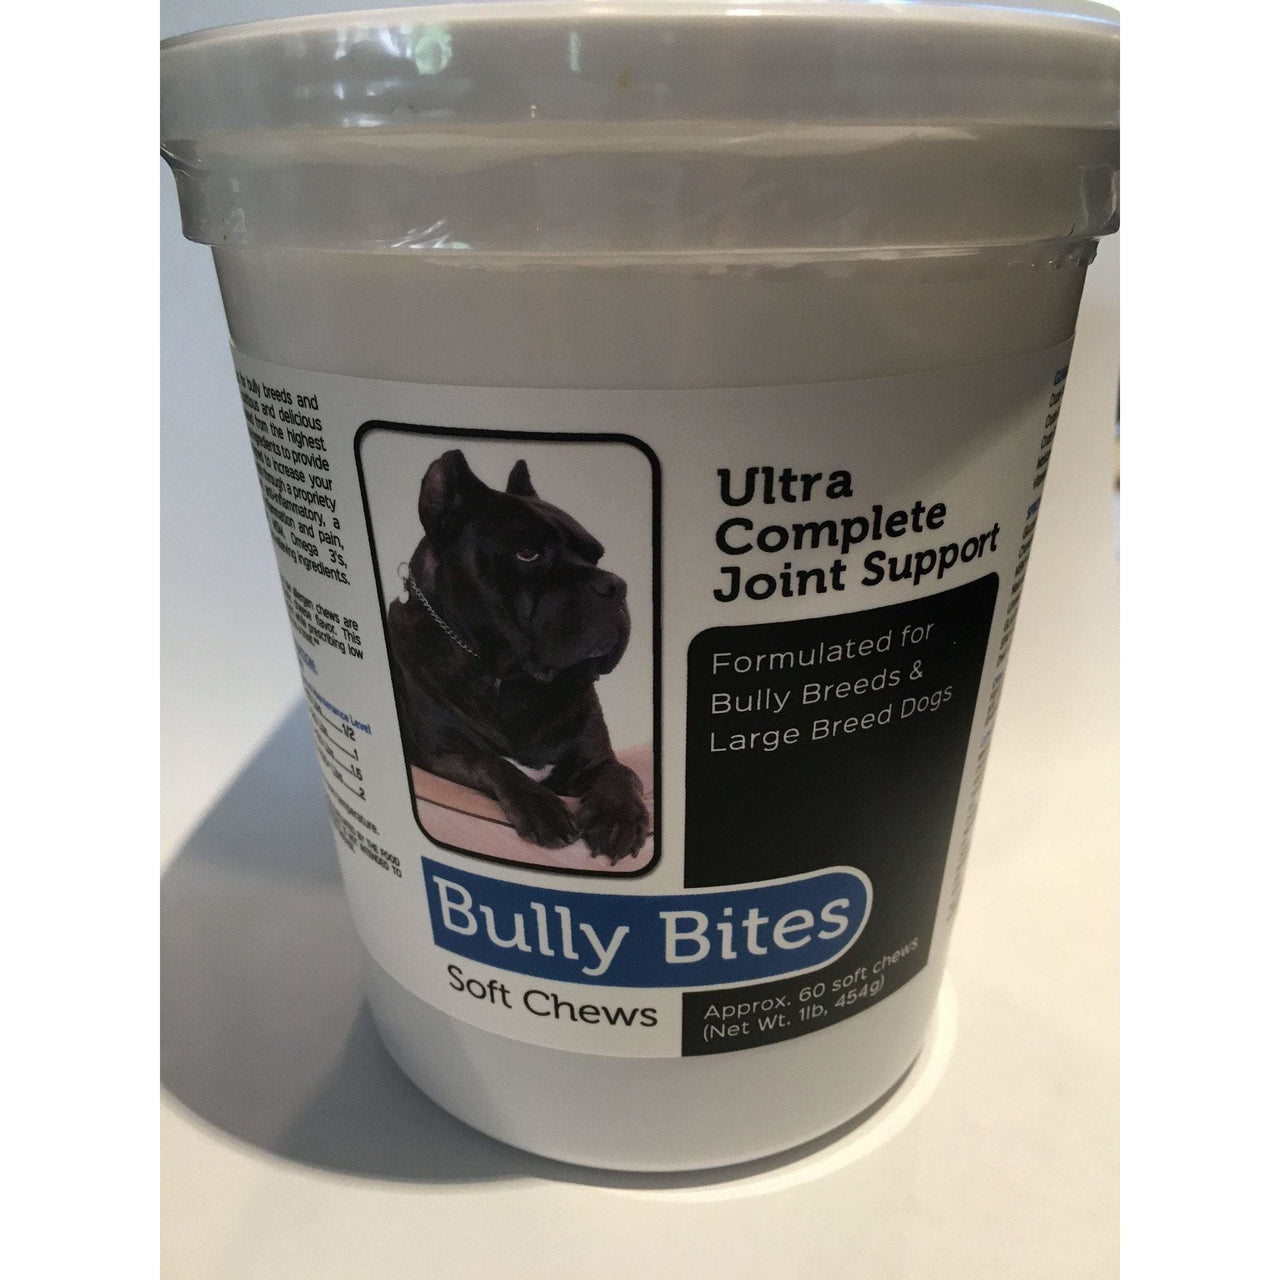 Bully Bites Ultra Complete Joint Support Soft Chews Bullybeds.com